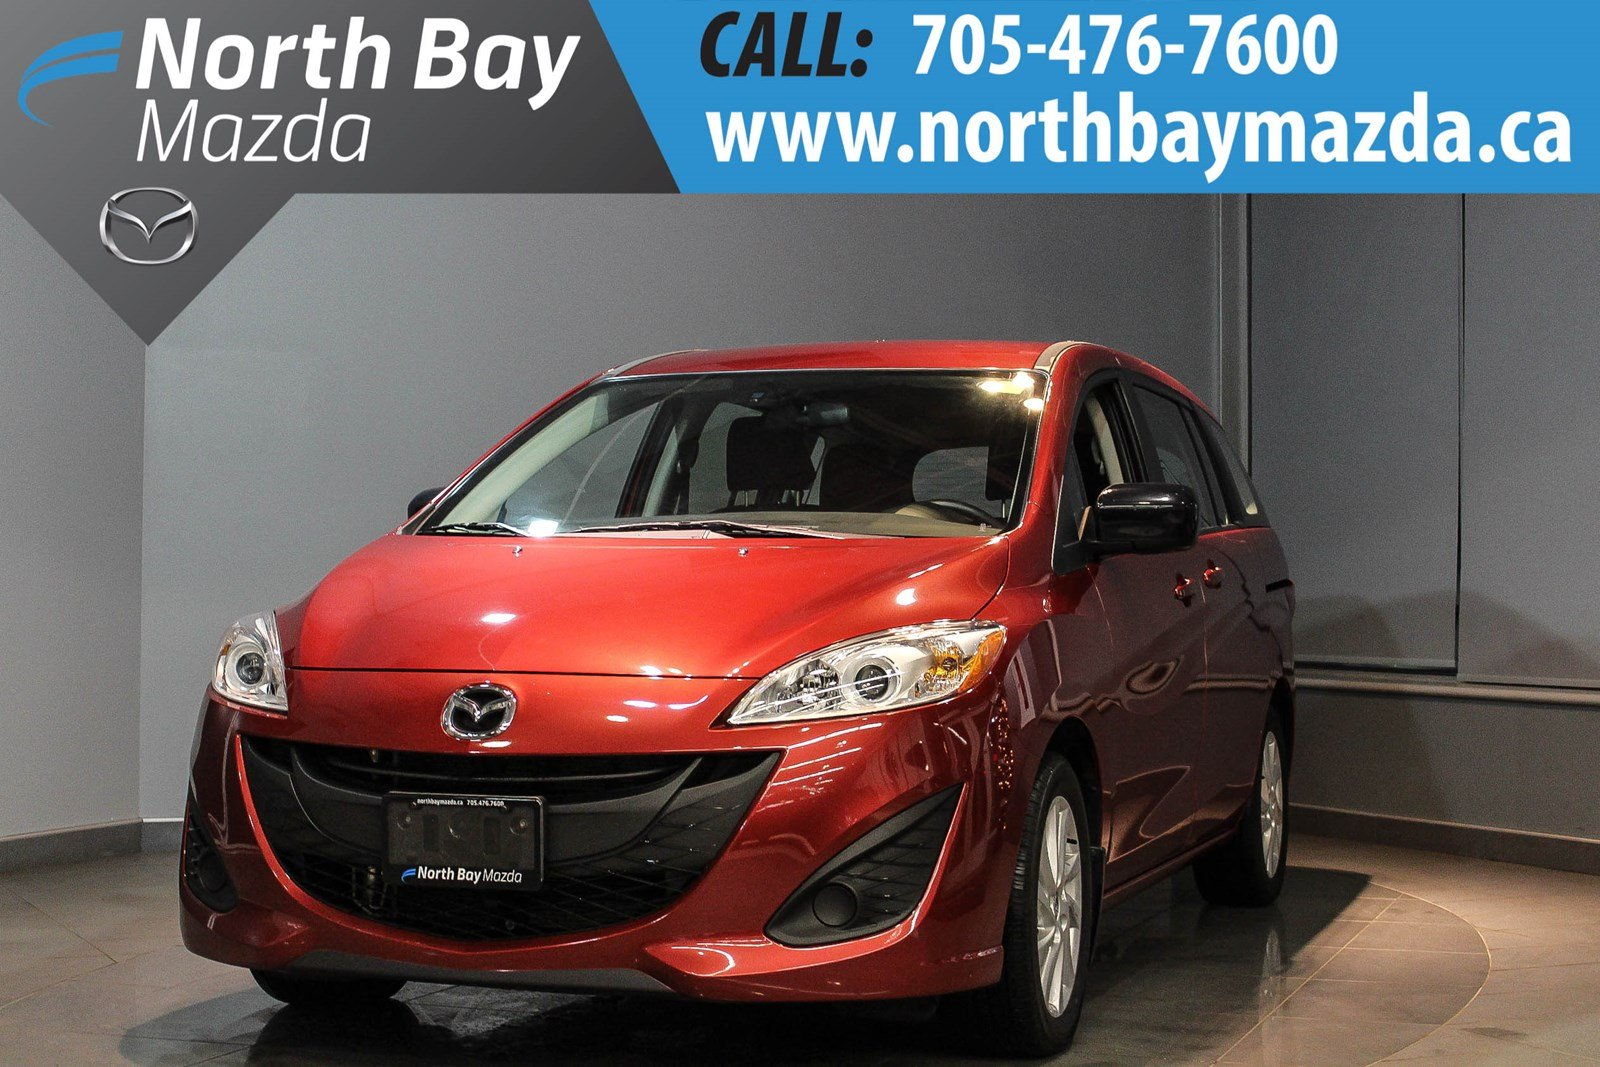 Pre-Owned 2017 Mazda5 GS Auto with Bluetooth, Cruise Control